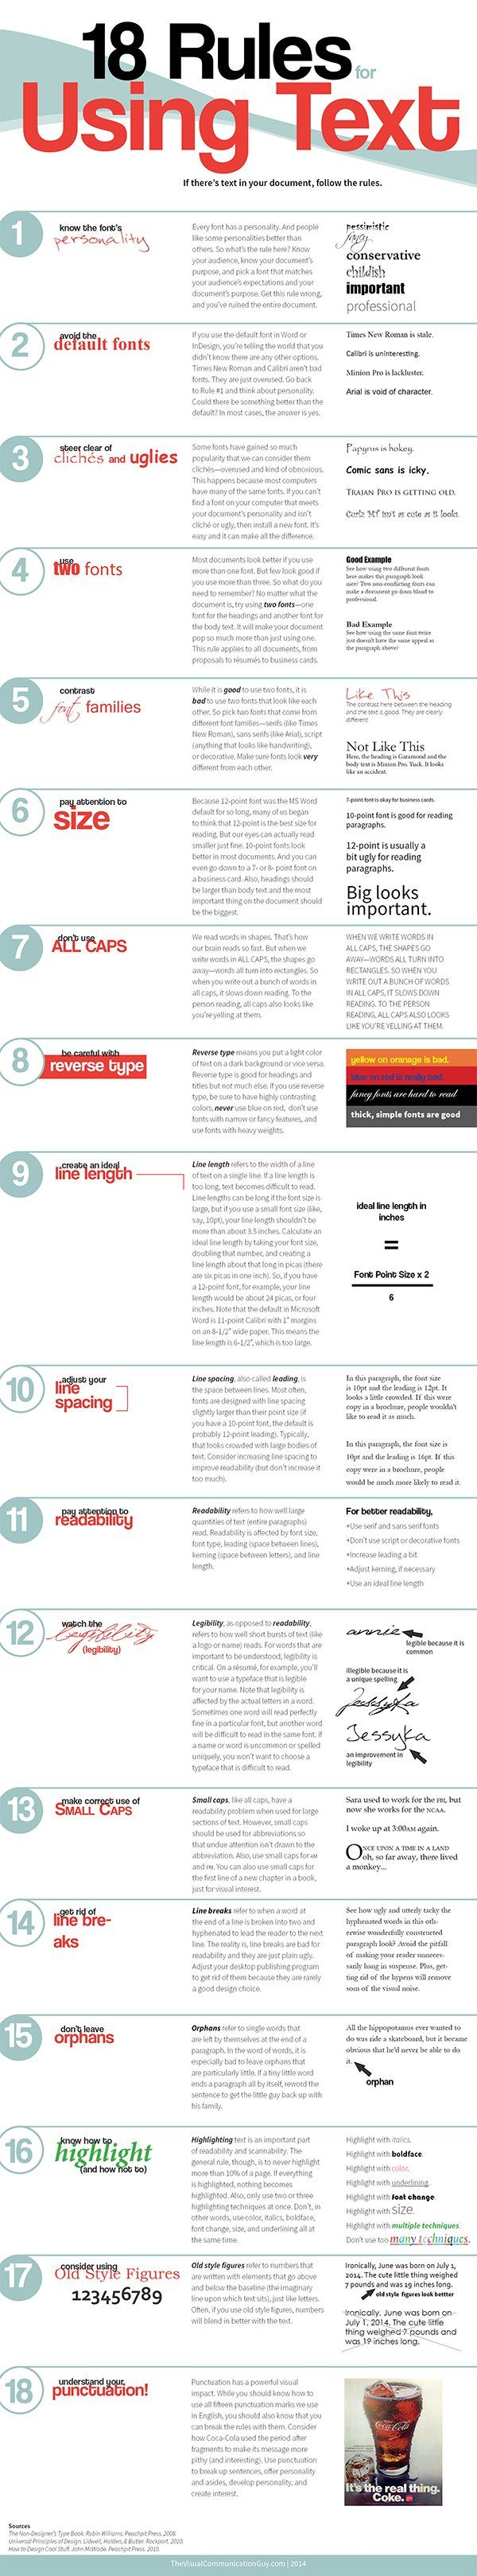 18-rules-you-must-follow-to-ensure-you-use-text-correctly-on-your-website1-1.jpg 600×3239 pikseli